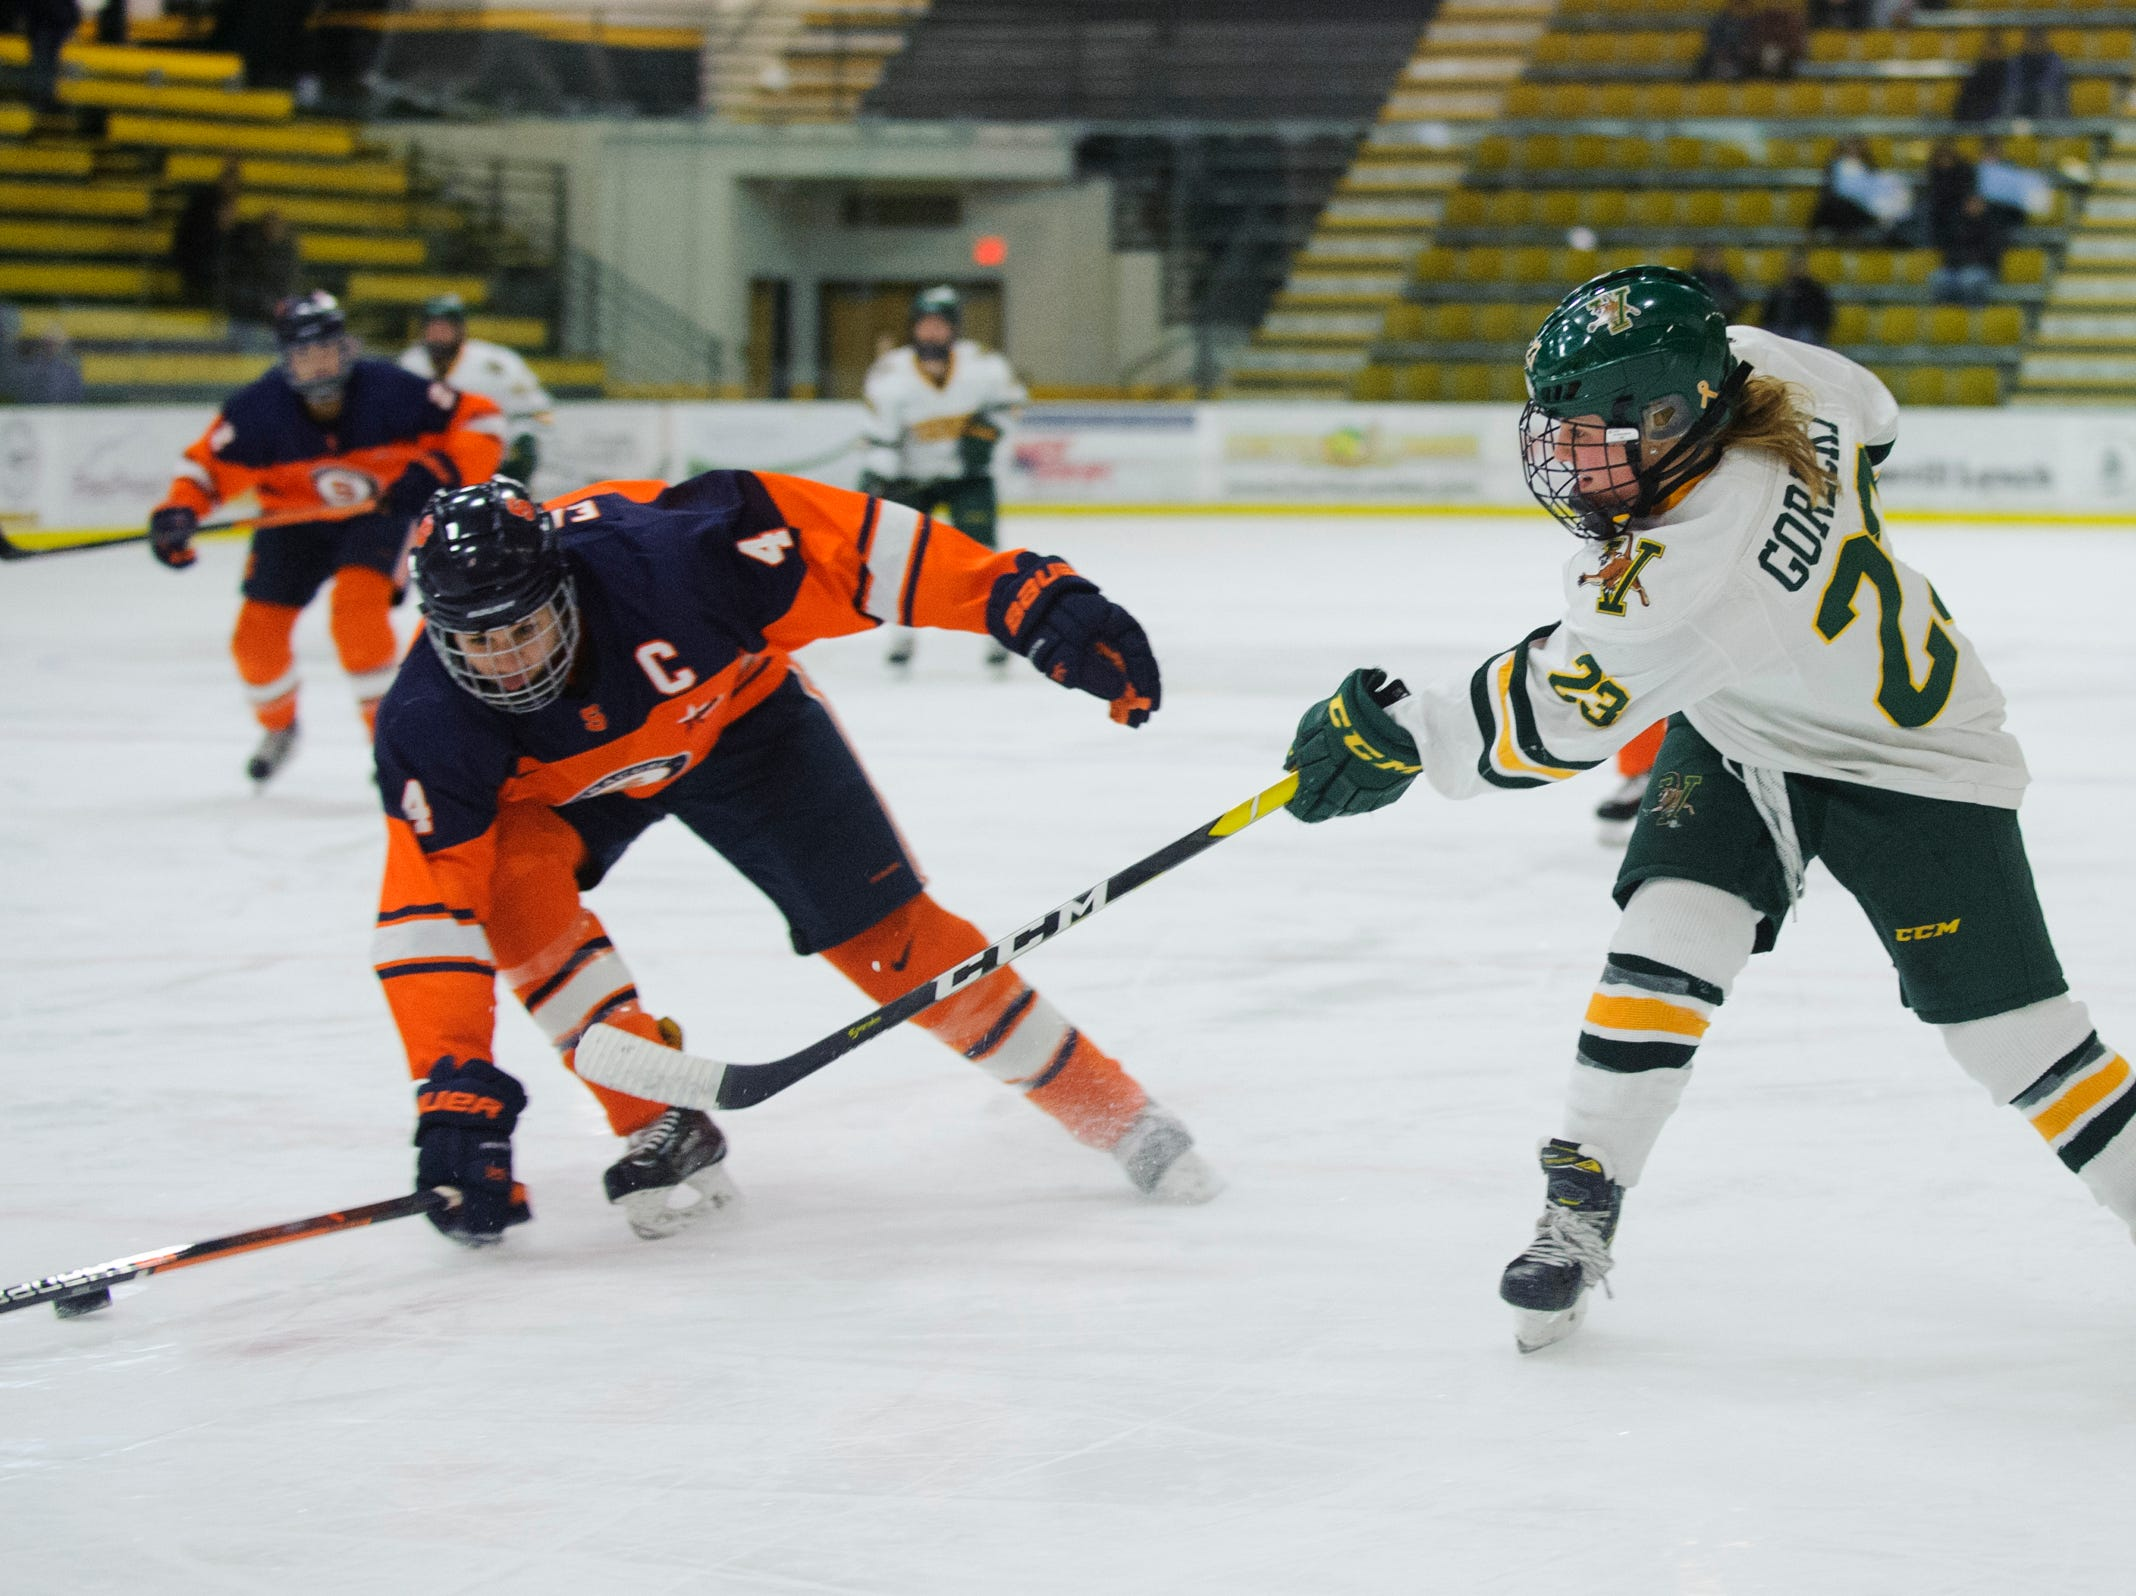 Vermont's Alyssa Gorecki (23) shoots the puck past Syracuse's Lindsay Eastwood (4) during the women's hockey game between the Syracuse Orange and the Vermont Catamounts at Gutterson Field House on Friday night November 23, 2018 in Burlington.